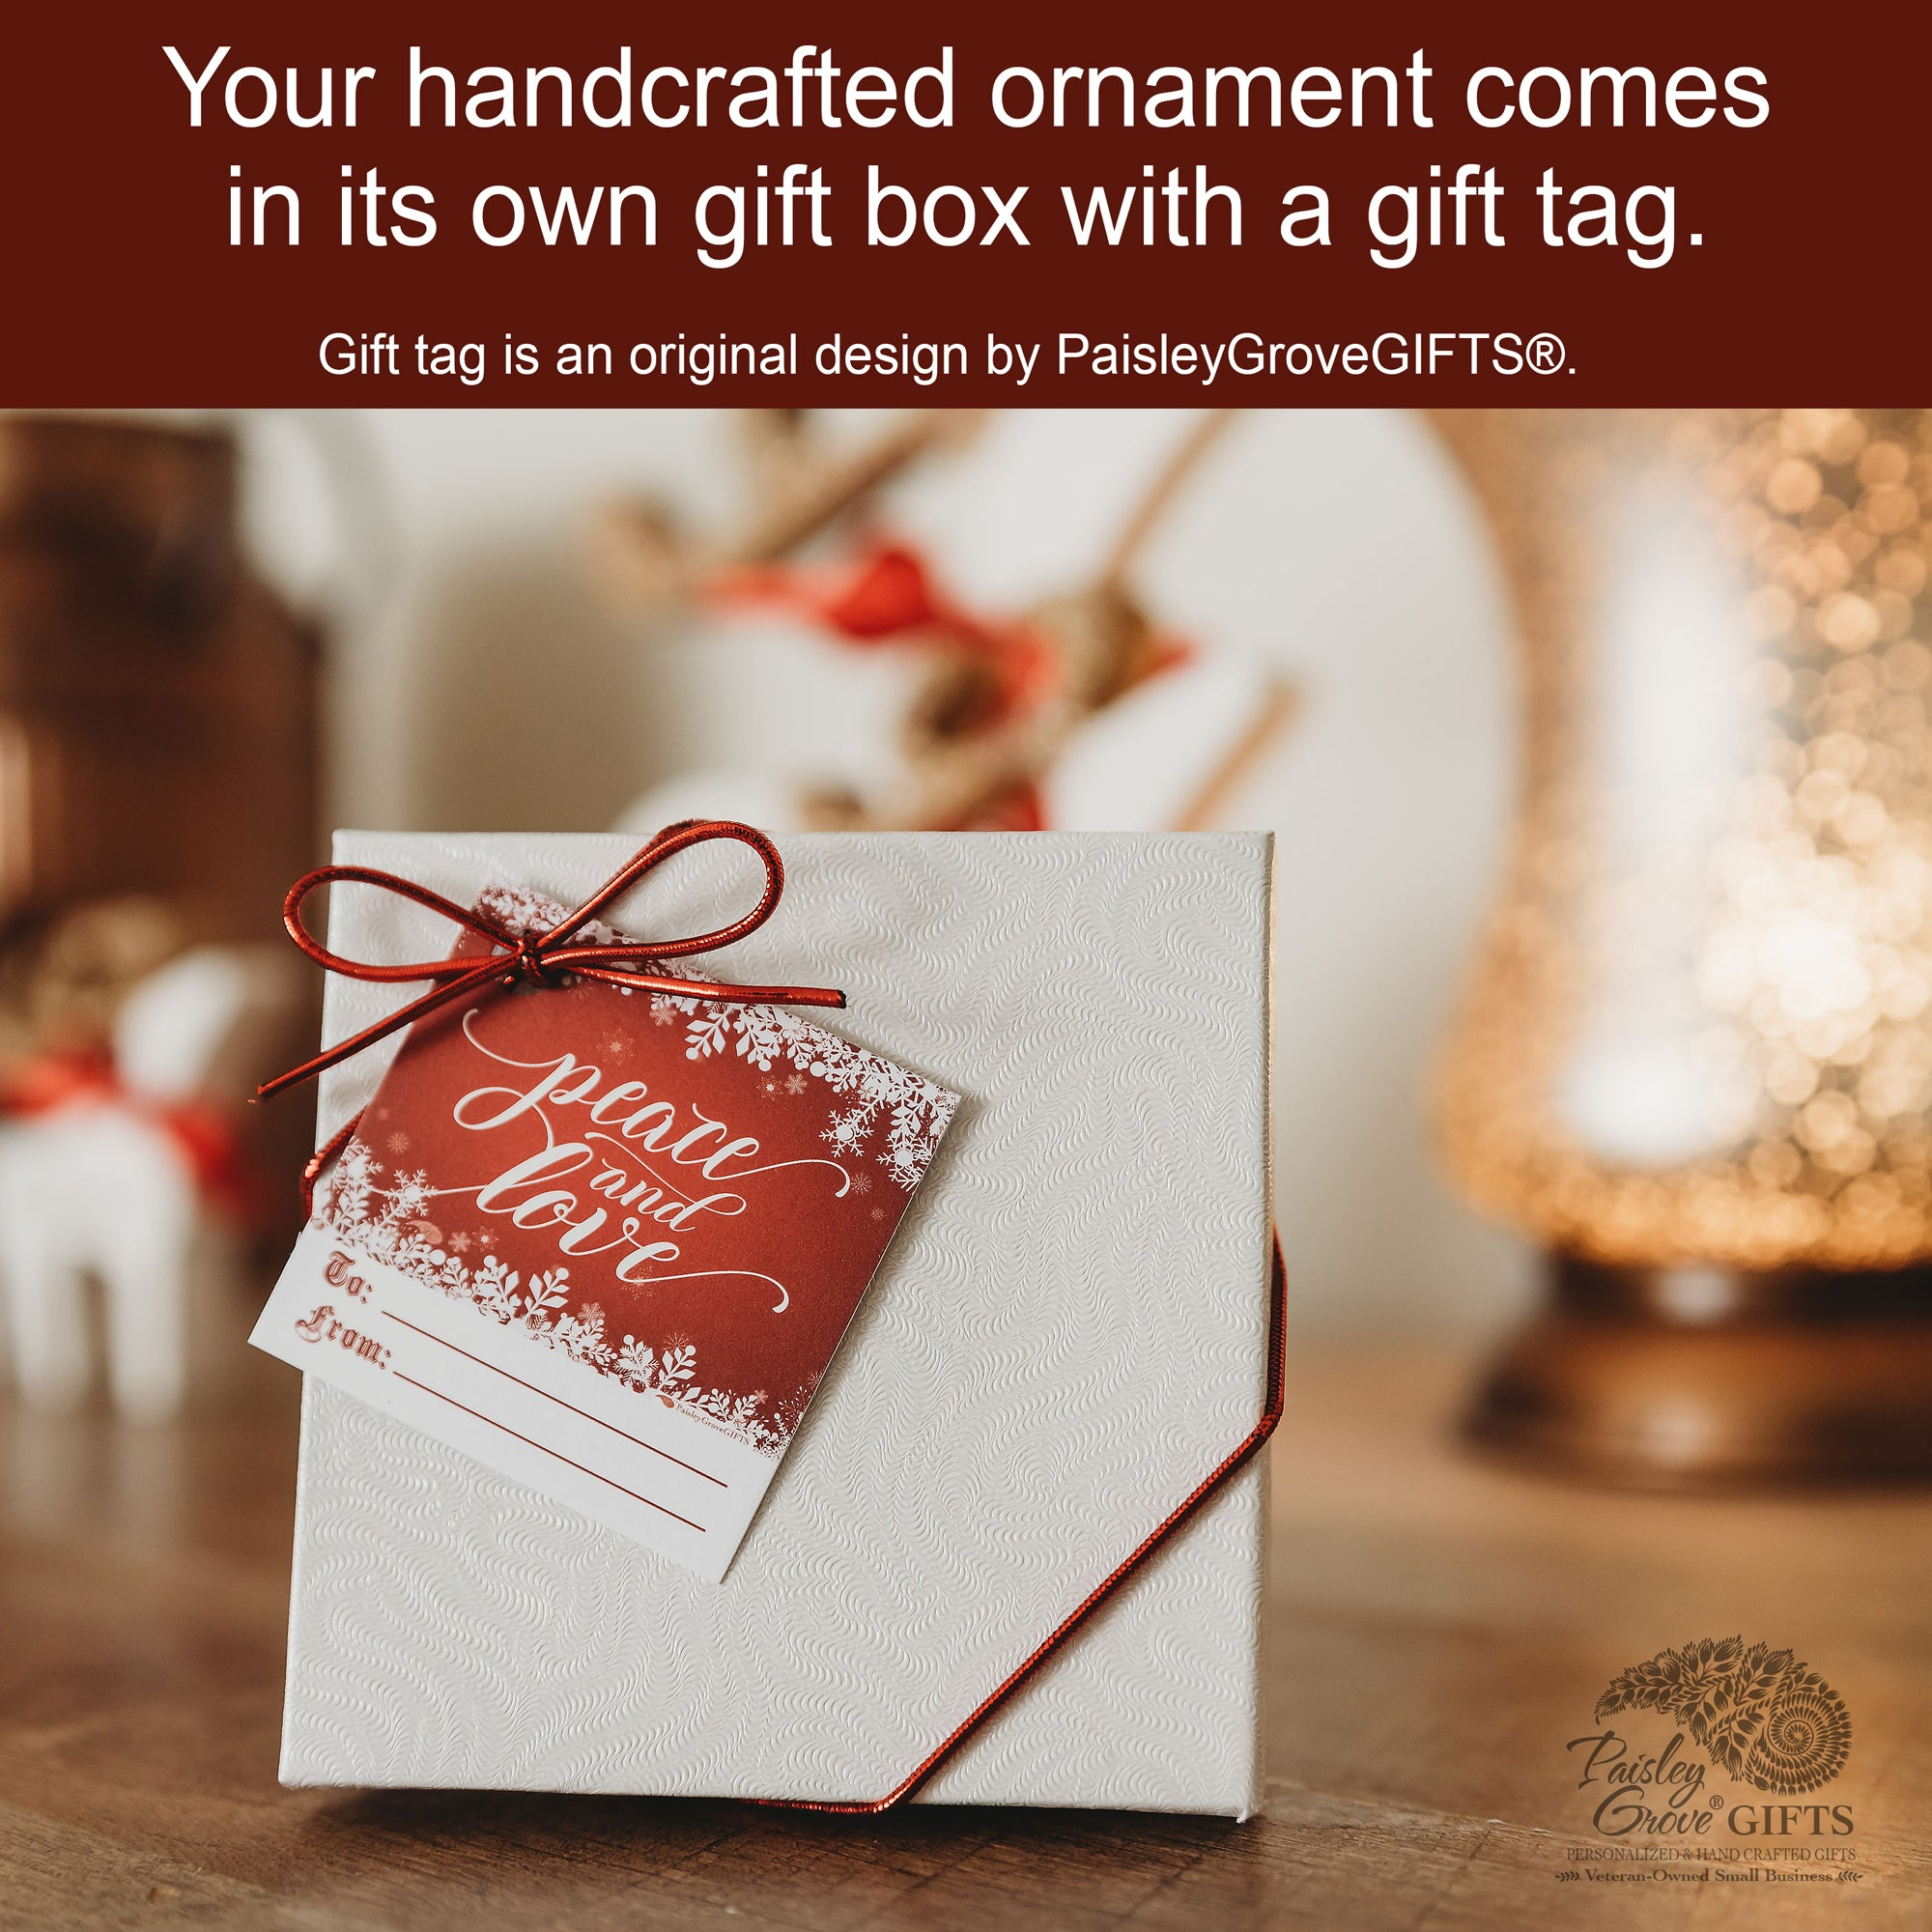 Copyright PaisleyGroveGIFTS S522e Pet Loss Christmas Ornament includes keepsake gift box with gift tag